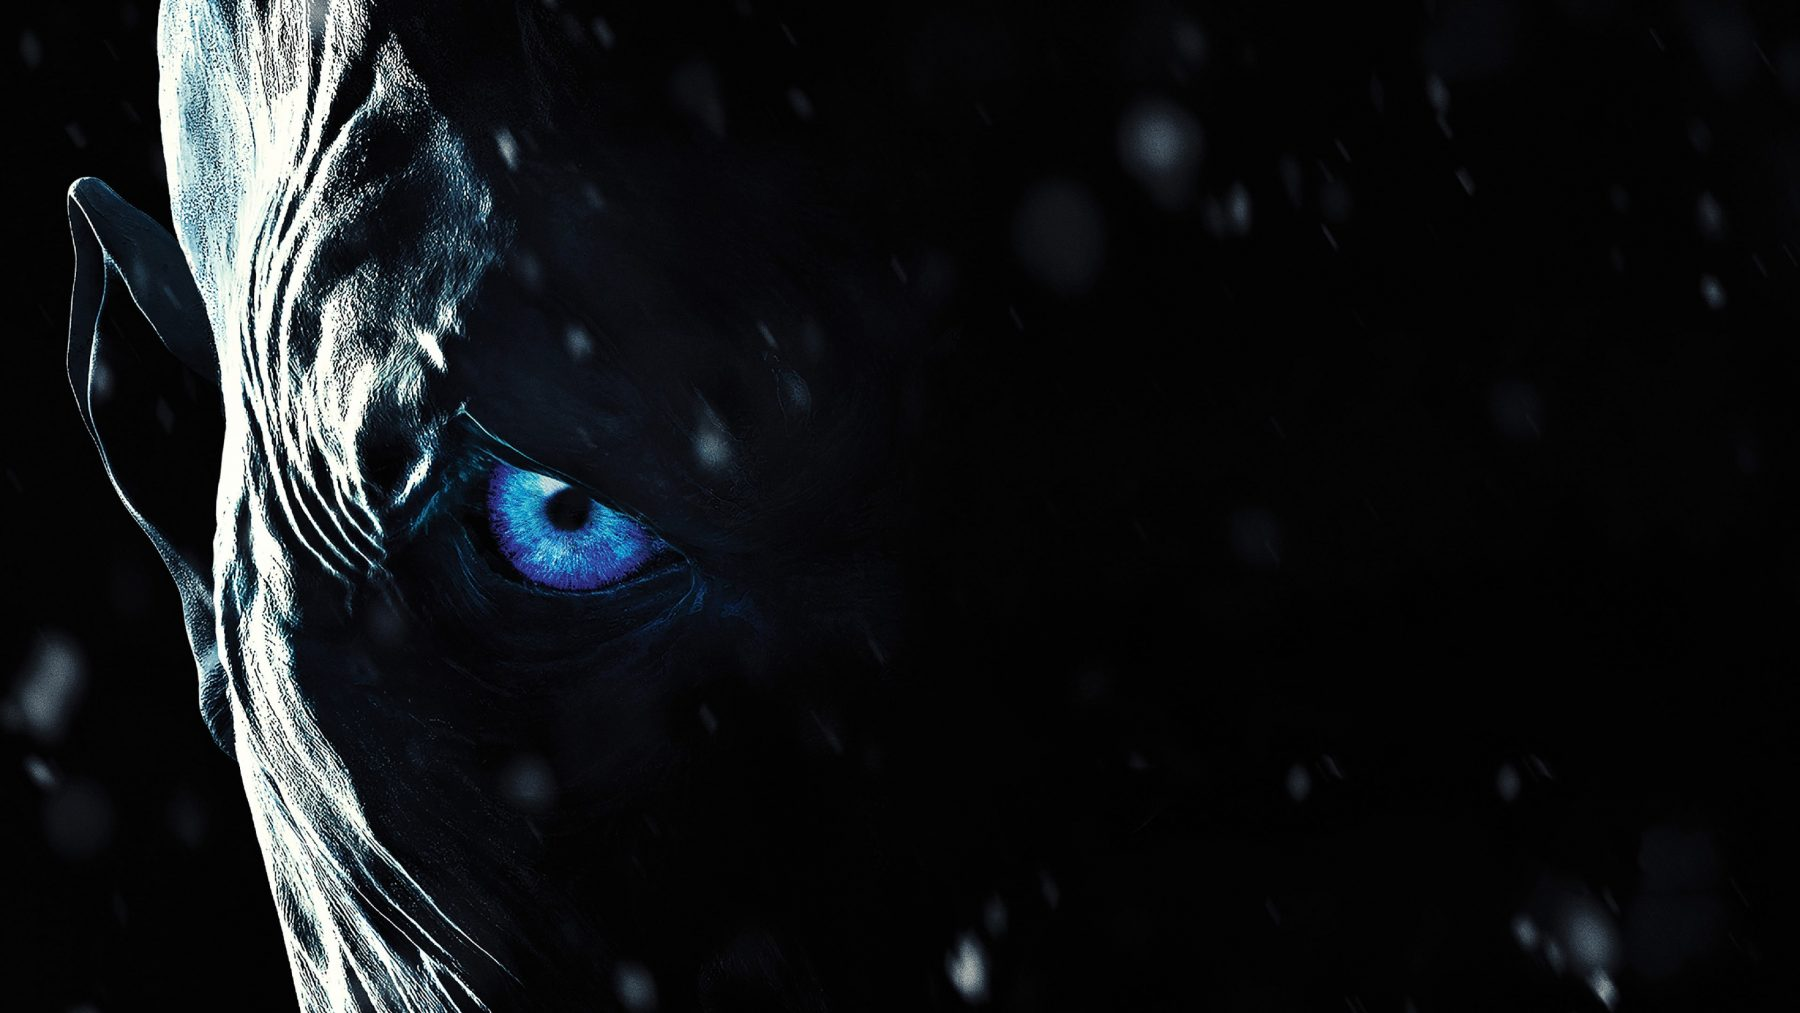 Game Of Thrones Hd Wallpapers 7wallpapers Net